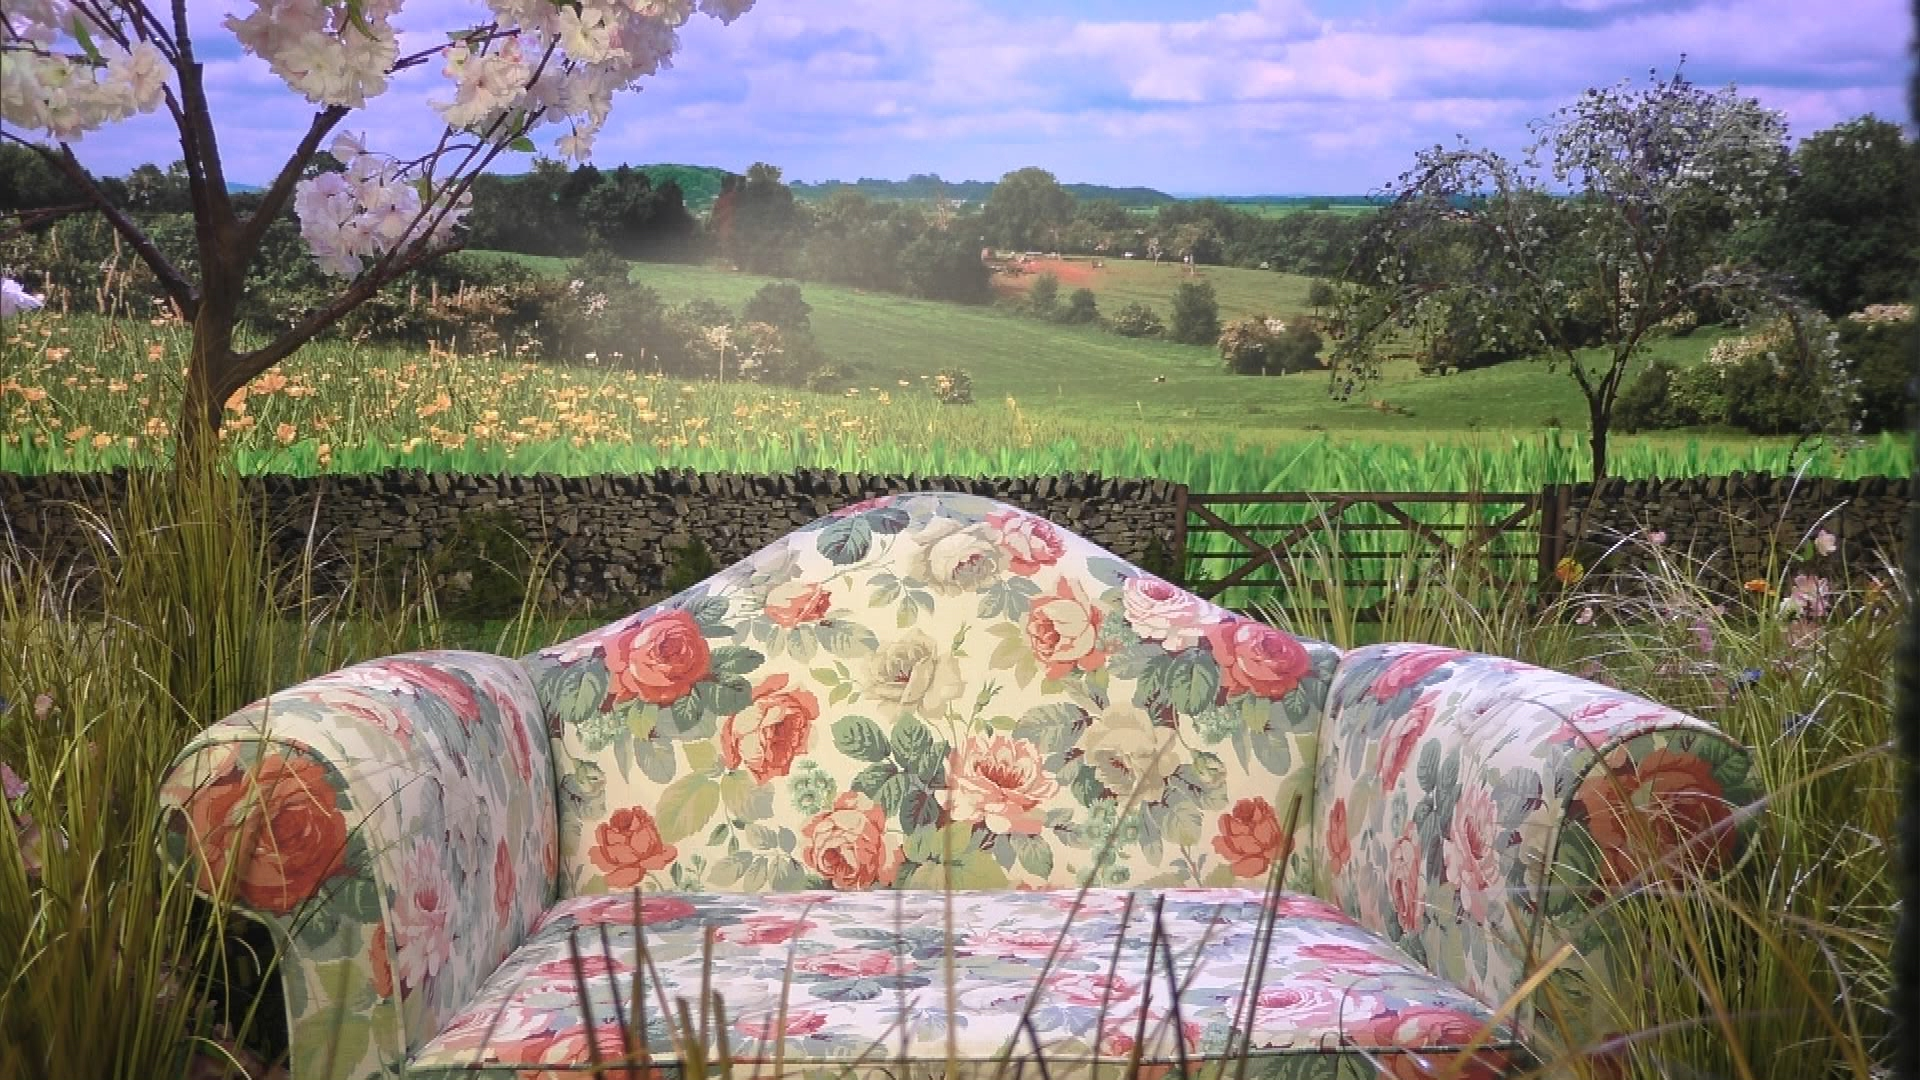 Channel 5 have revealed an image of the diary room chair for the series starting tonight. & Big Brother Global: Diary room chair revealed - Big Brother 18 [bb 2017]